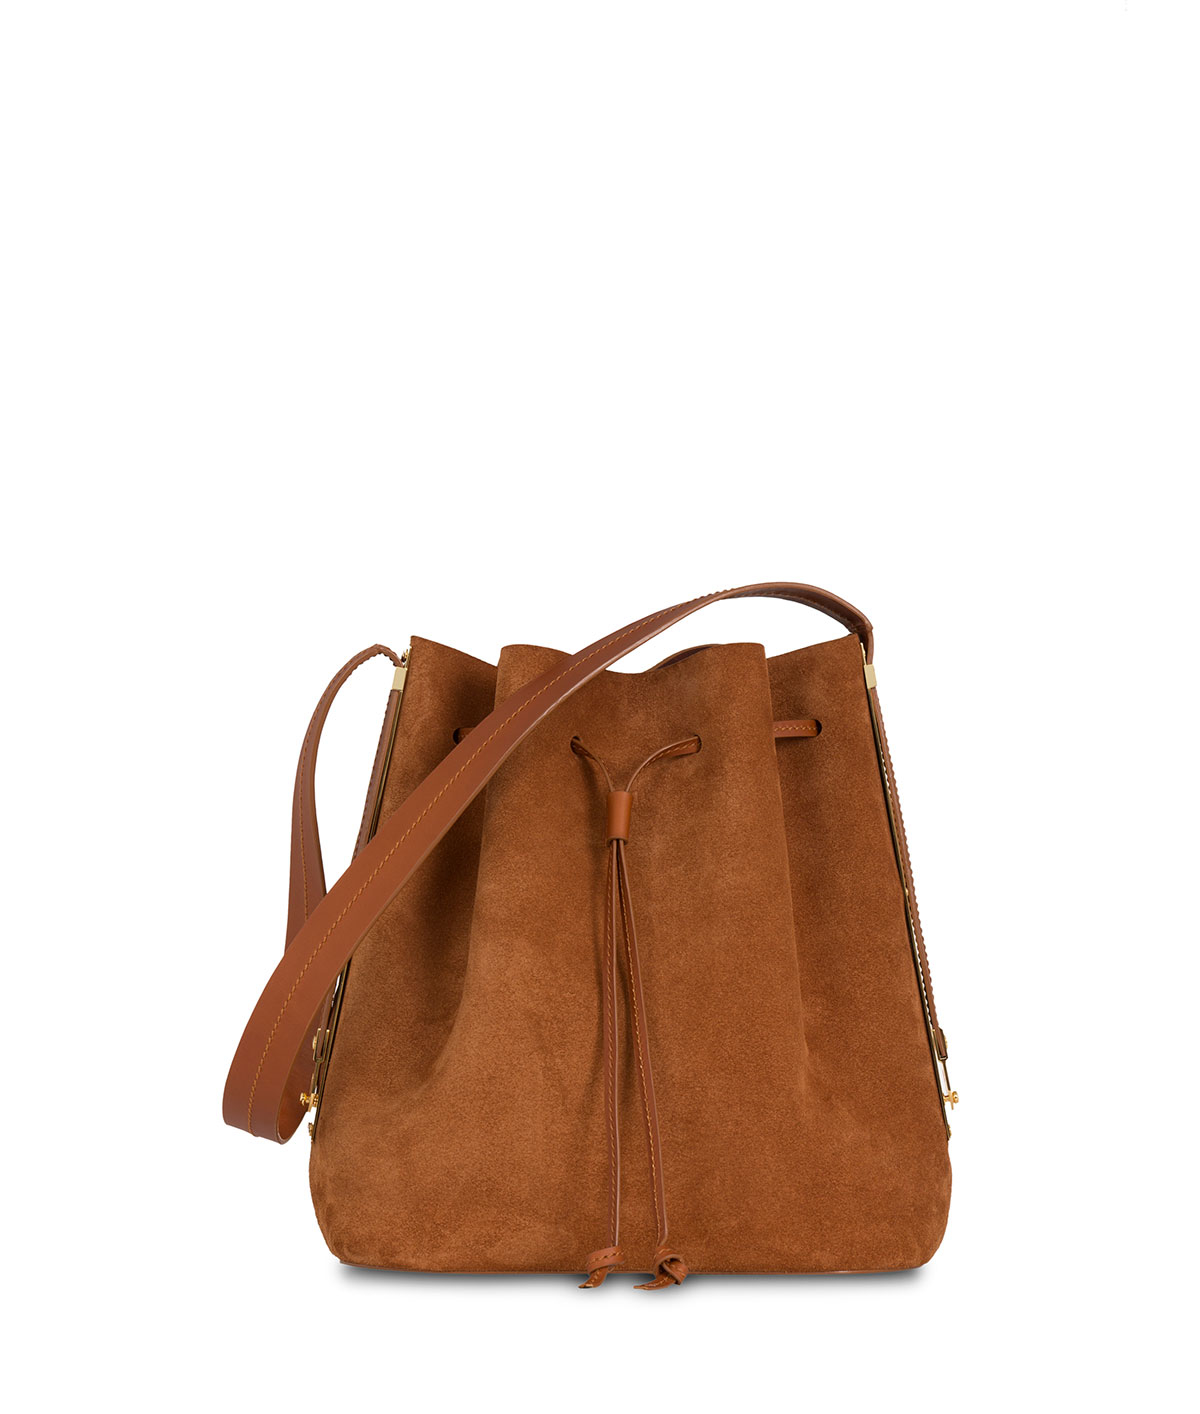 Sophie hulme Gibson Suede Bucket Bag in Brown | Lyst